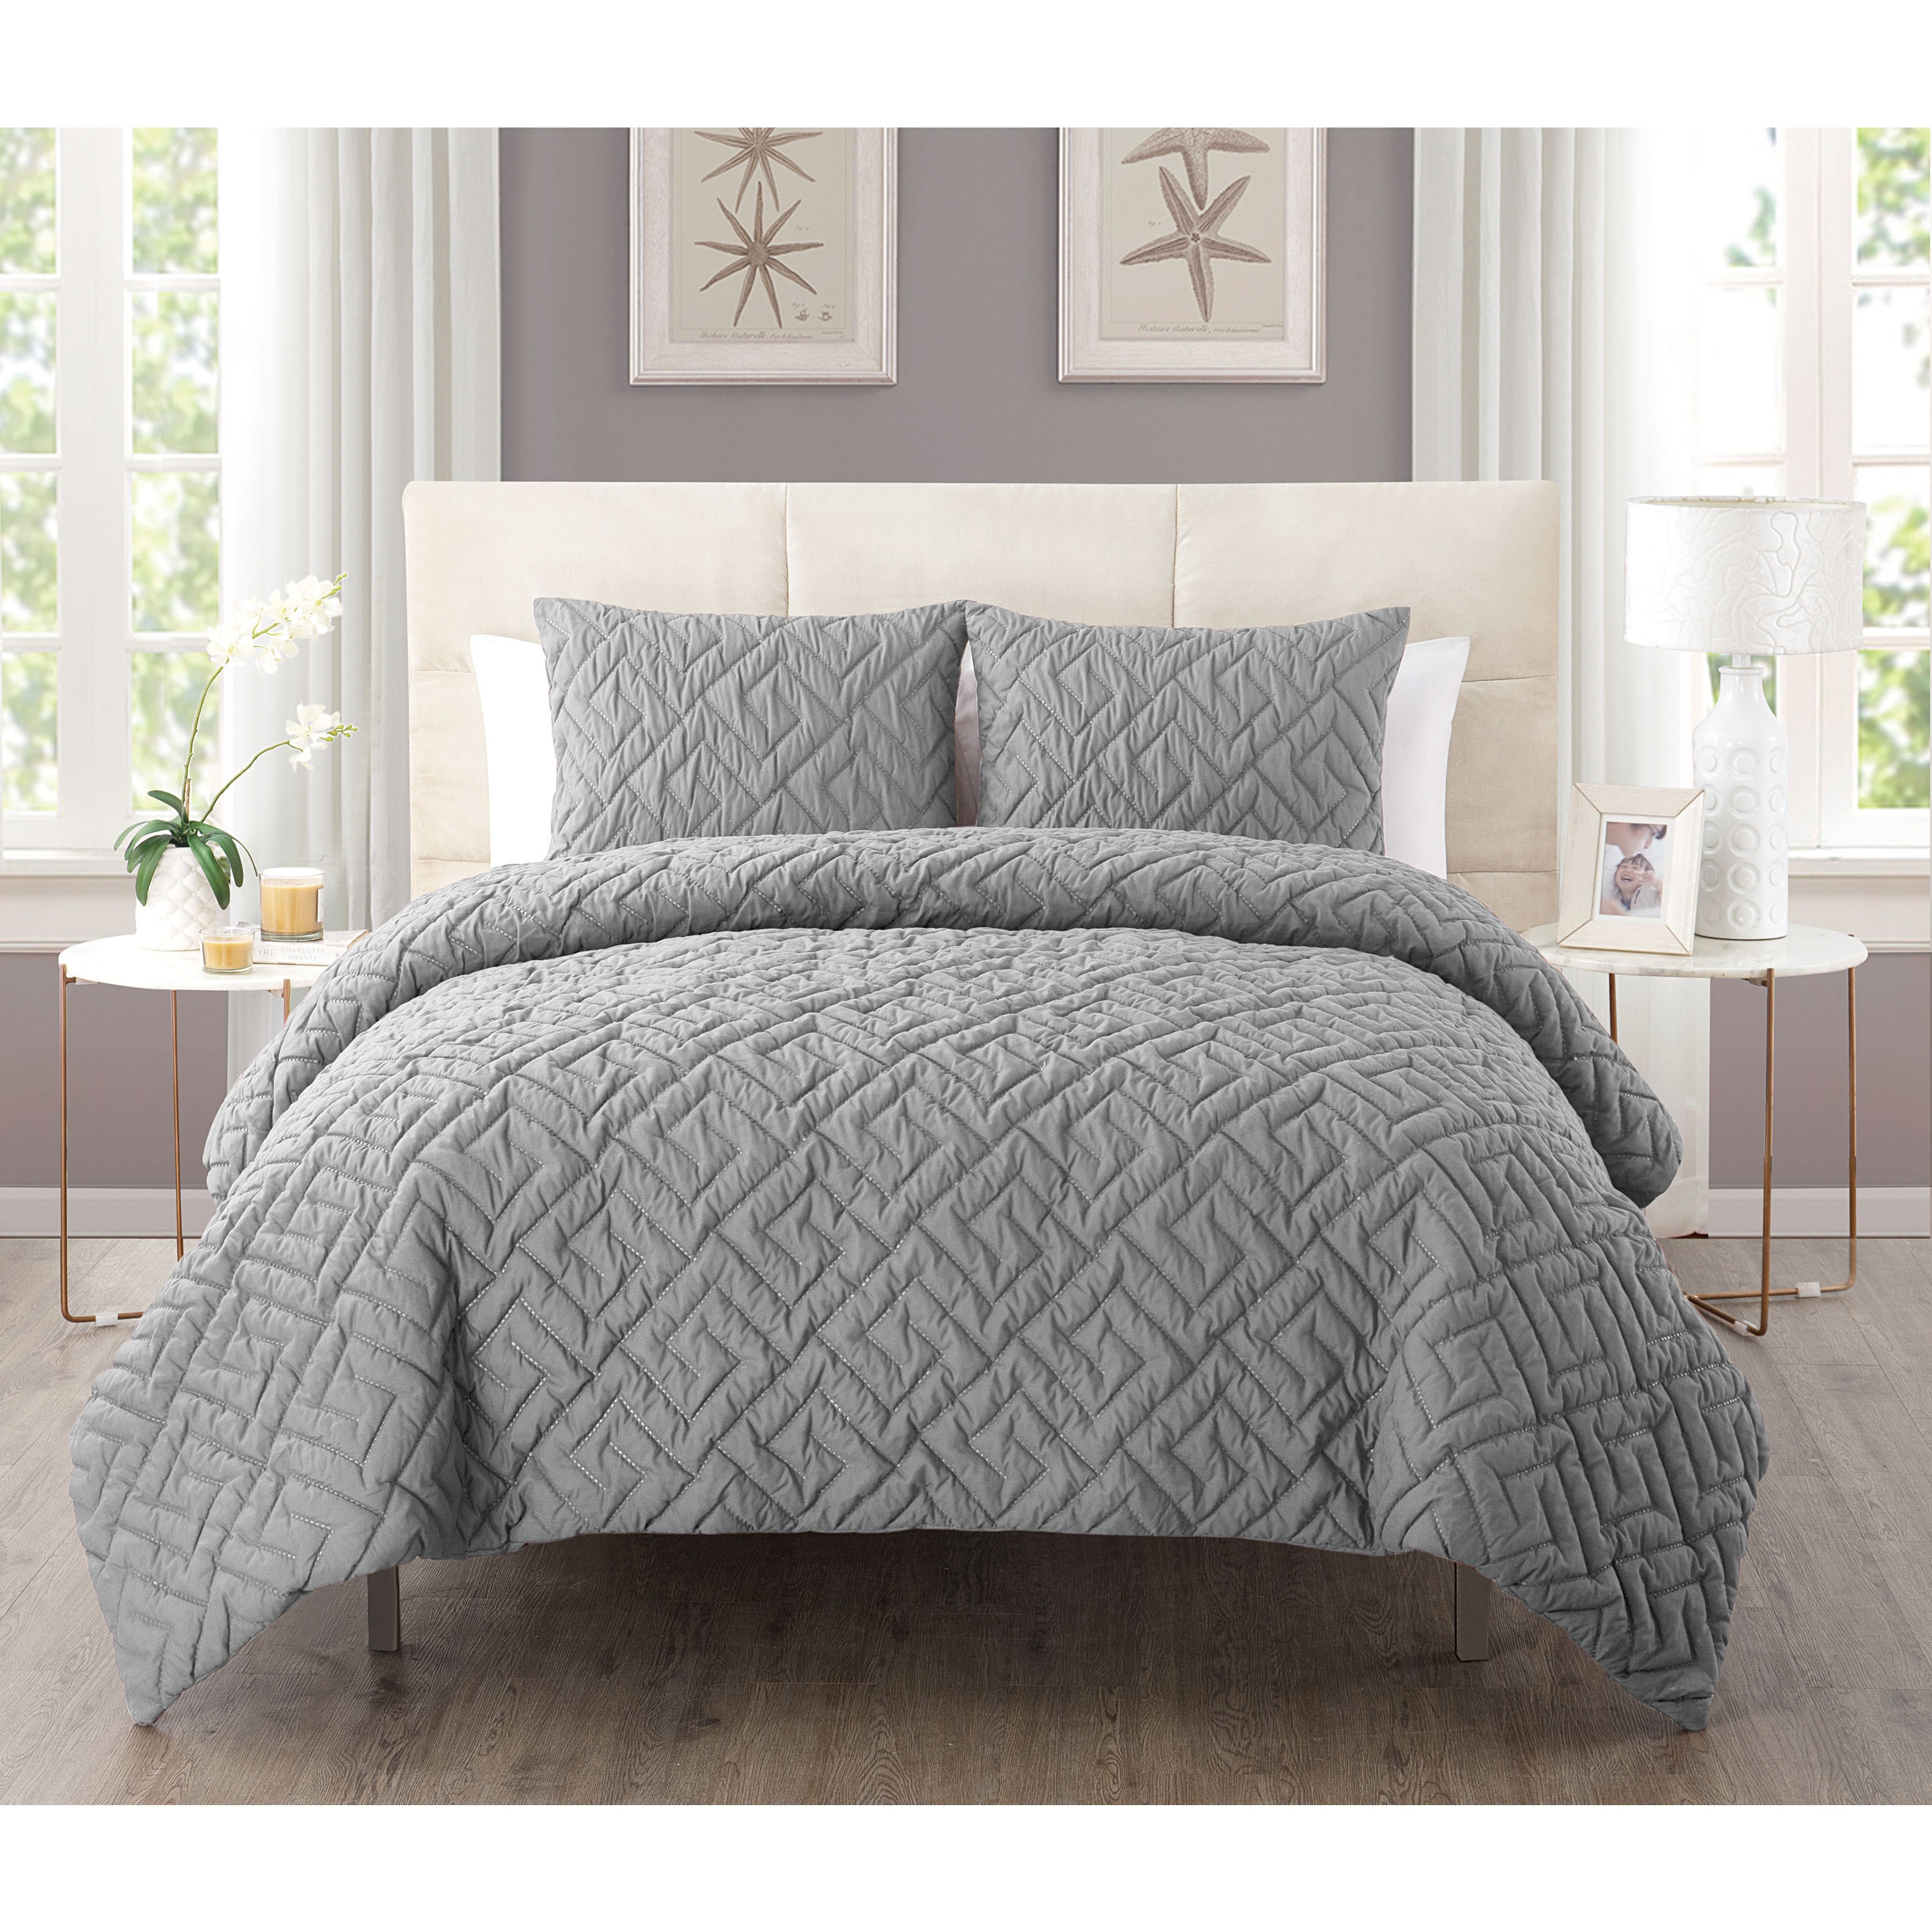 pdx season queen reviews down bath wayfair alwyn comforter home alternative all bed